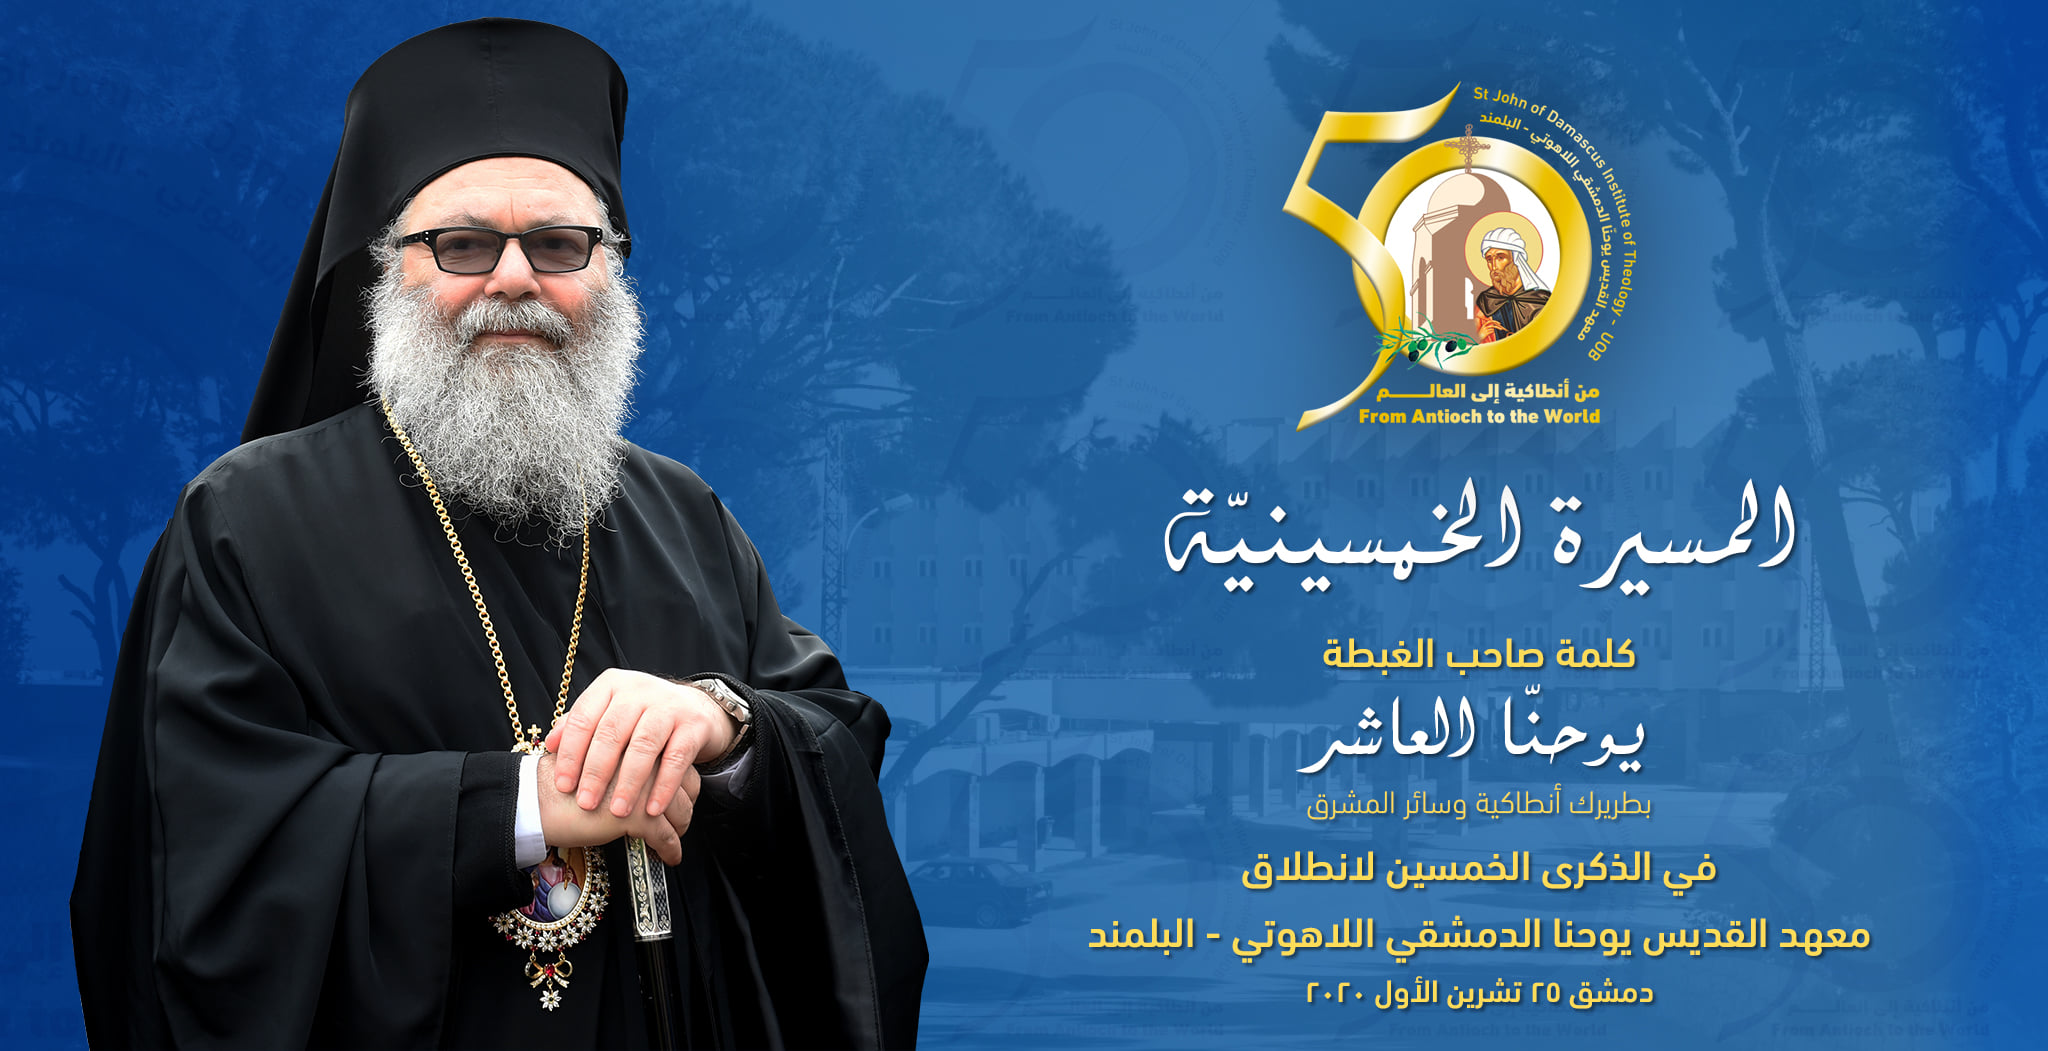 speech-of-his-beatitude-john-x-at-the-golden-jubilee-for-the-launching-of-the-st-john-of-damascus-institute-of-theology-at-balamand